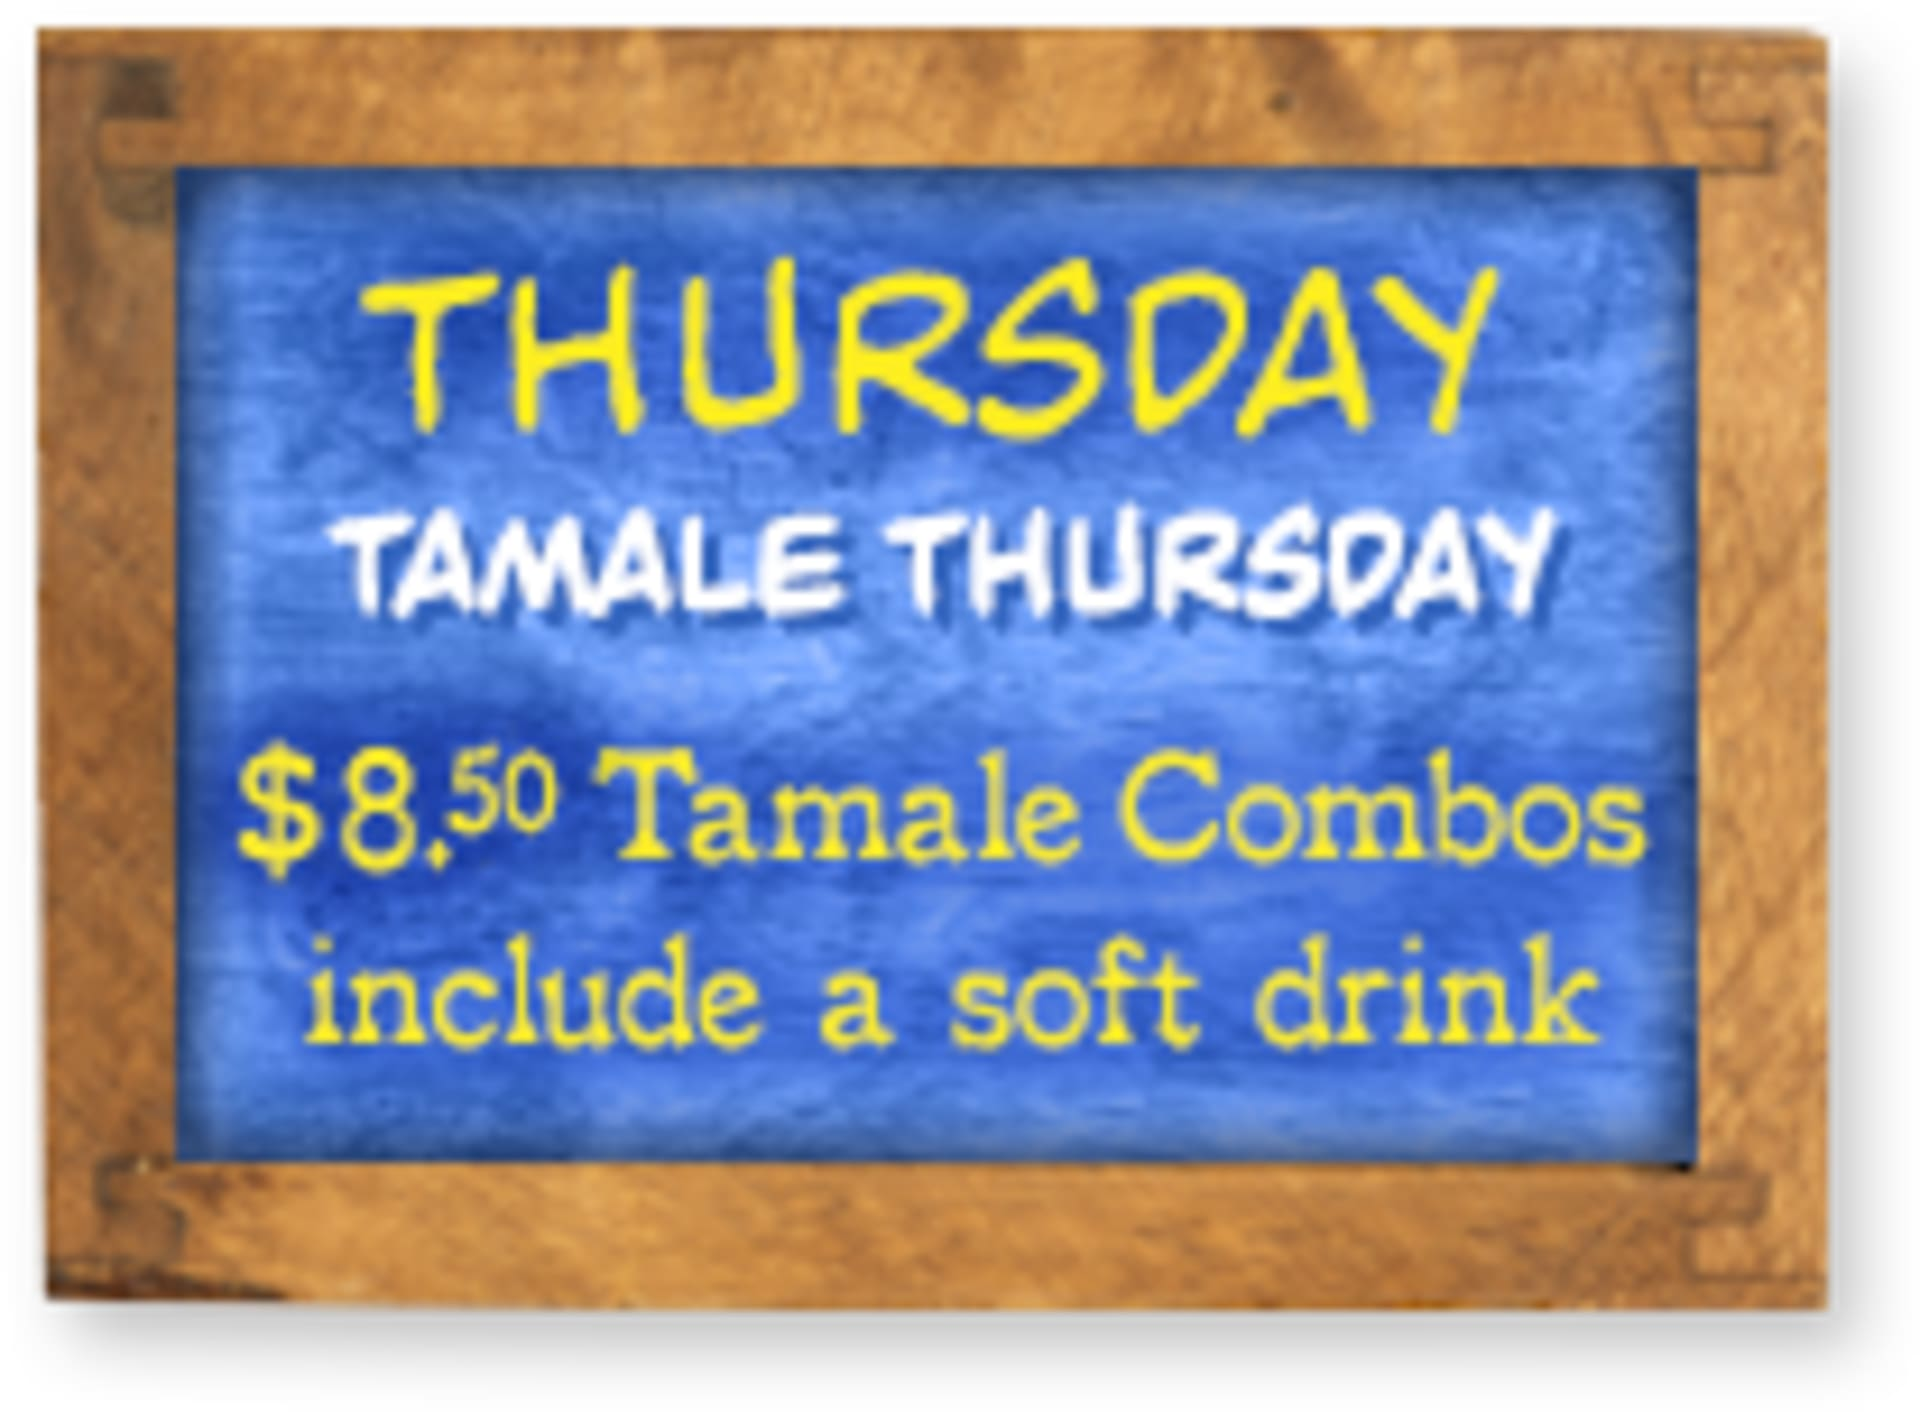 Tamale Thursday